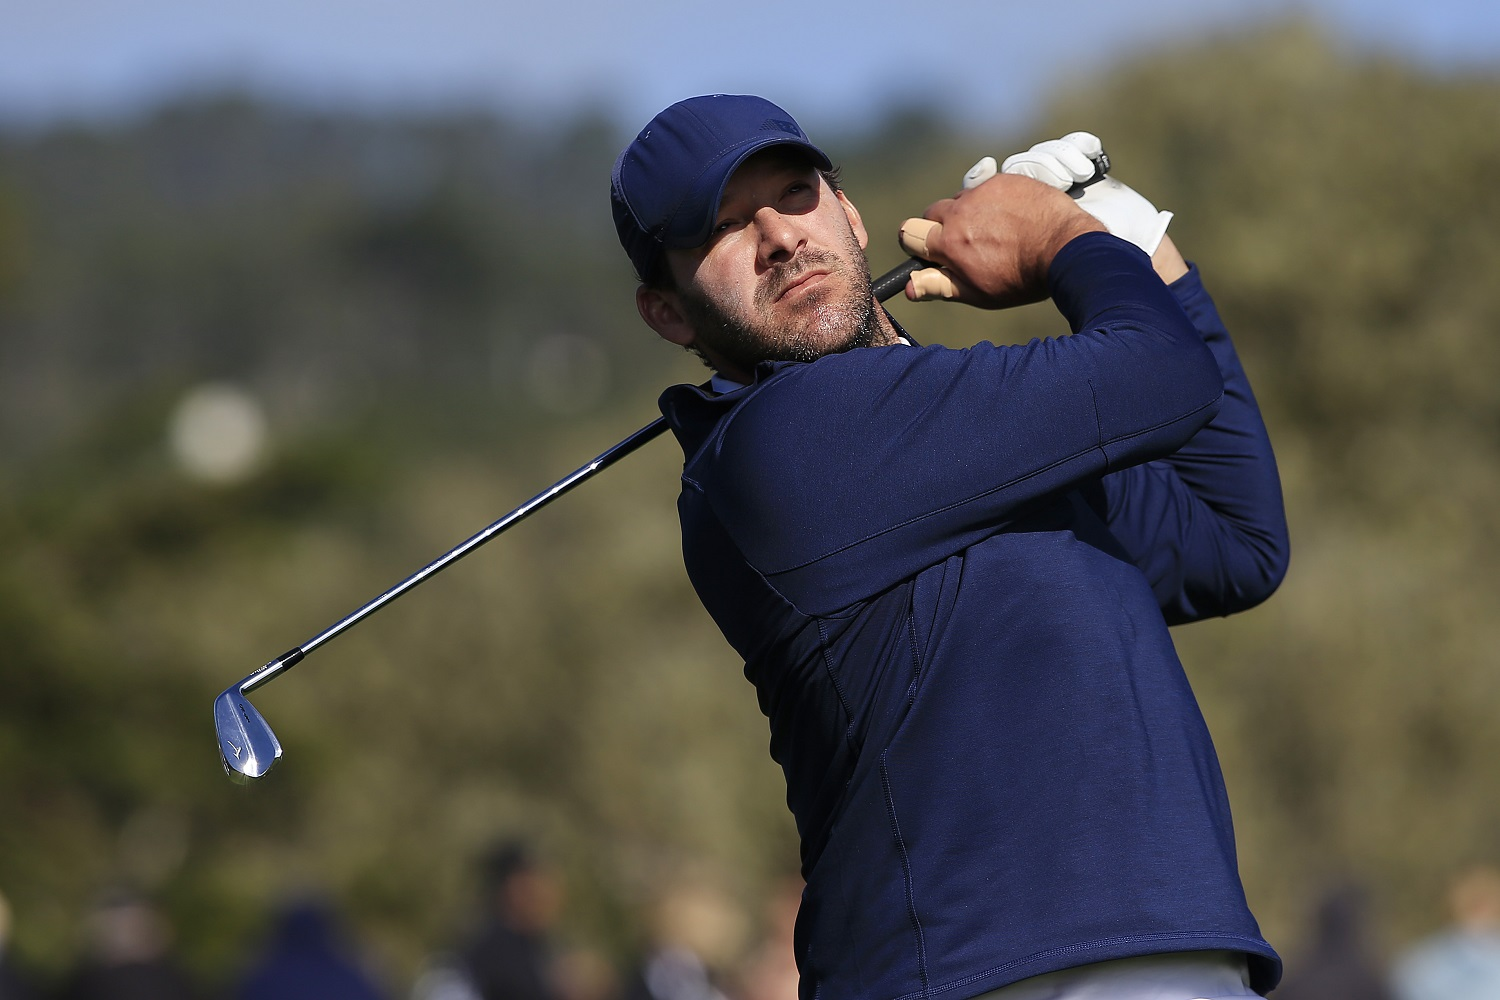 Tony Romo is an accomplished golfer, but he has once again fallen short in an attempt to qualify for the U.S. Open. | Chris Trotman/Getty Images